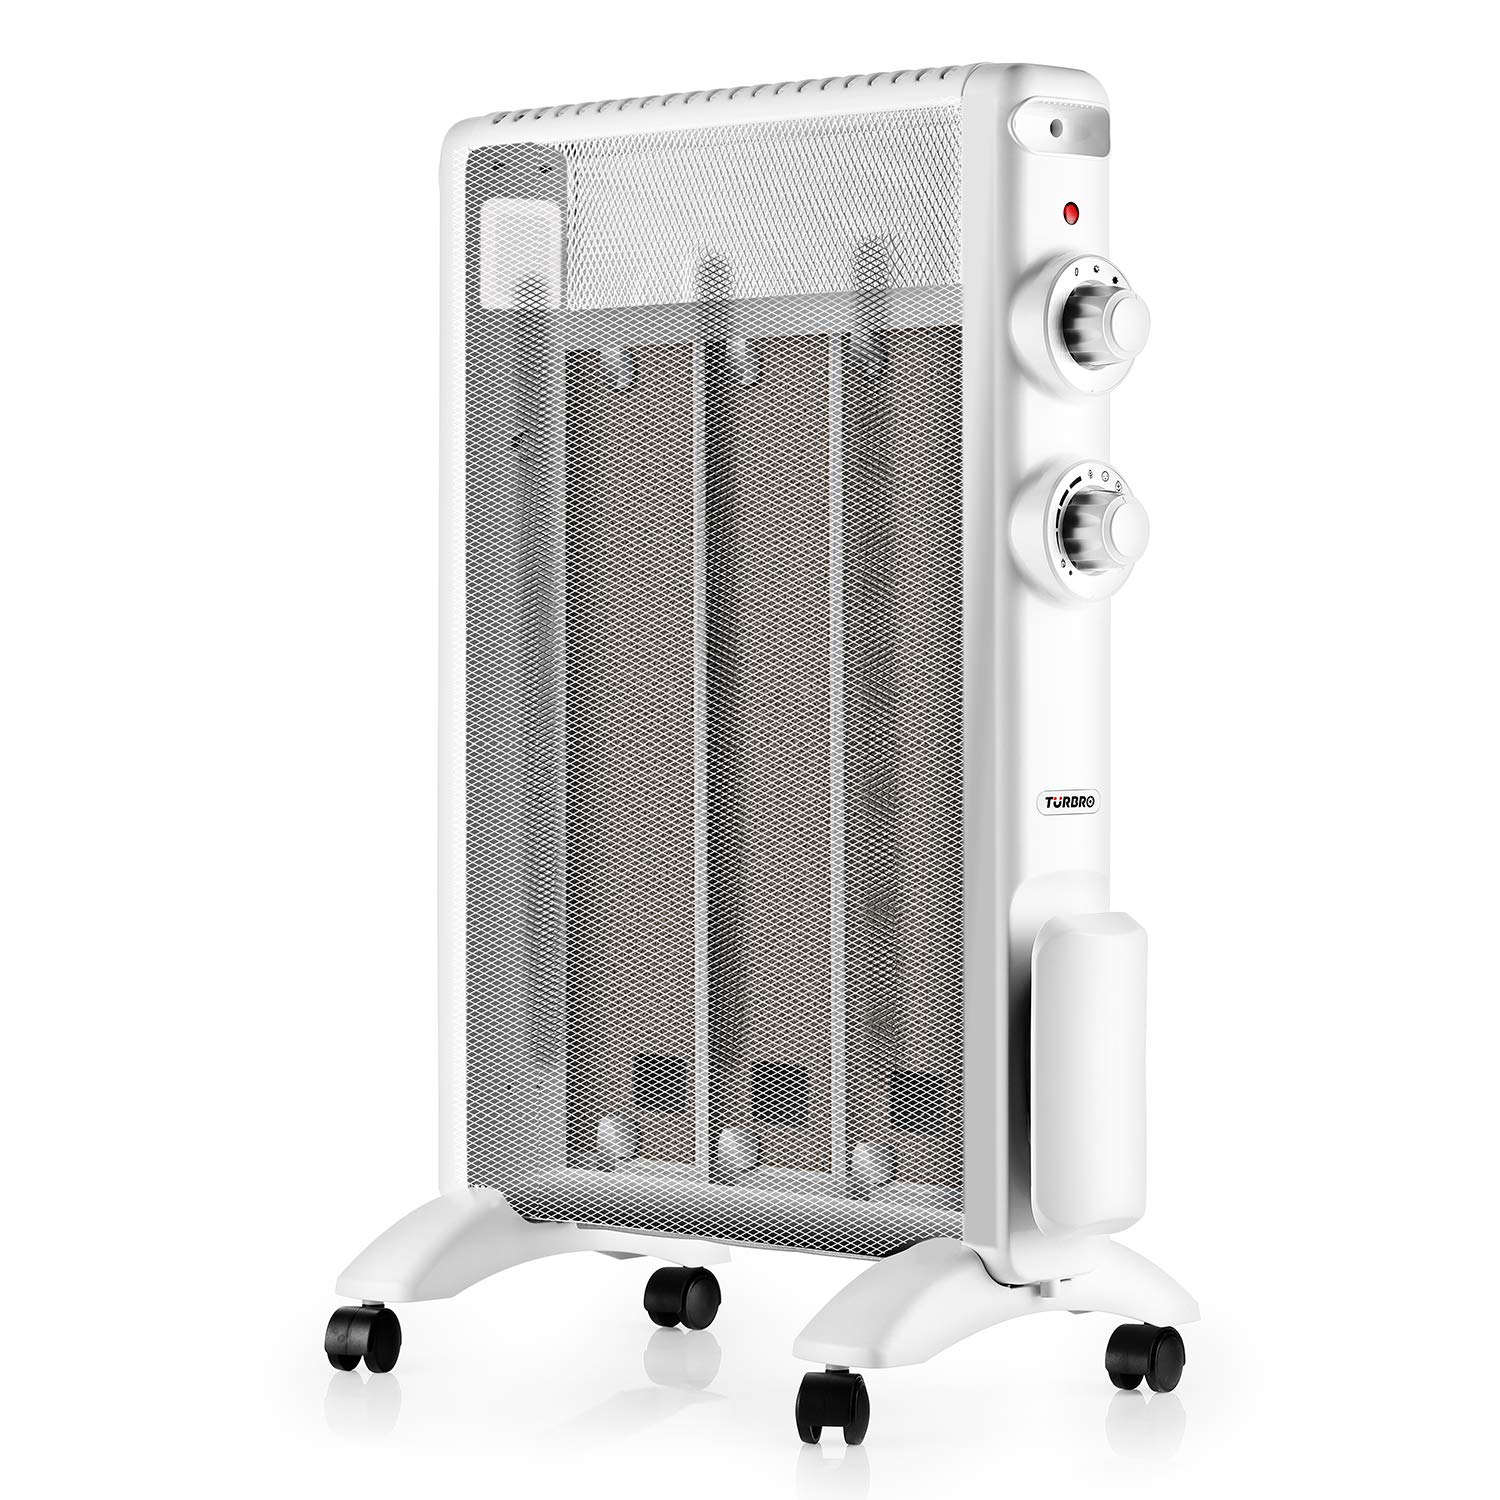 TURBRO Arcade HR1015 Electric Mica 1500W, ETL & CA Prop 65 Certified Micathermic Flat-Panel Heater with Adjustable Thermostat, Quiet for Home and Office 120V (White)